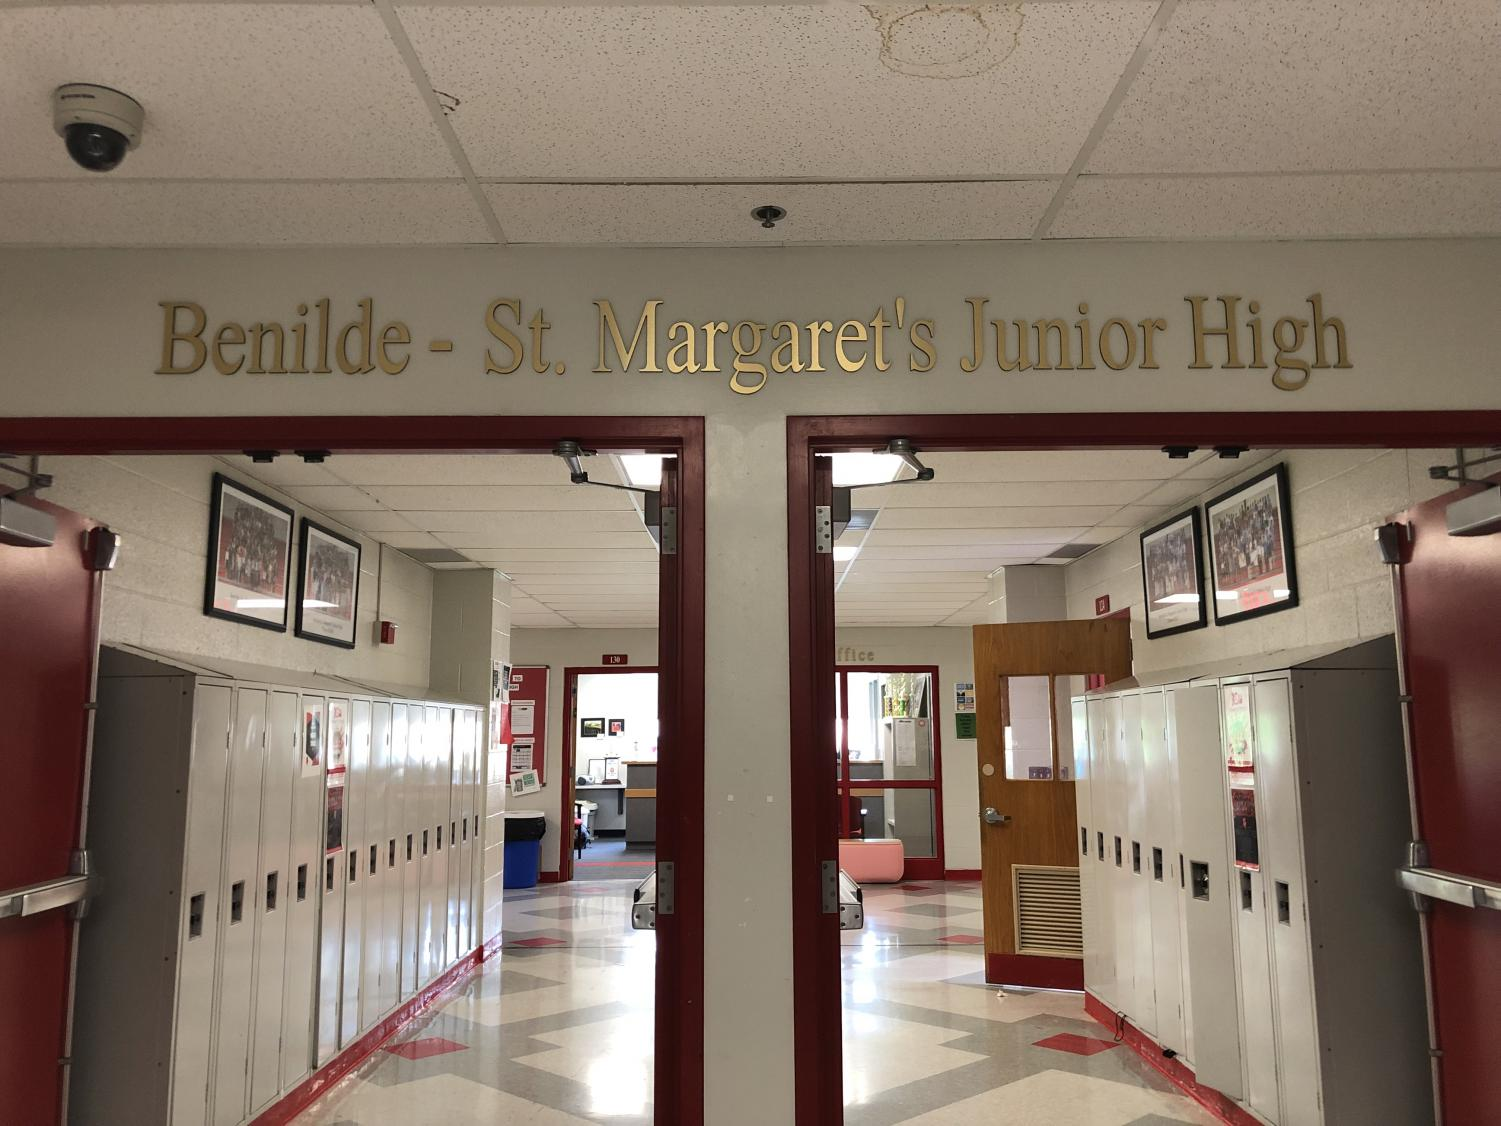 BSM's junior high will be under the leadership of Ms. Rikki Mortl starting with the 2019-2020 school year.